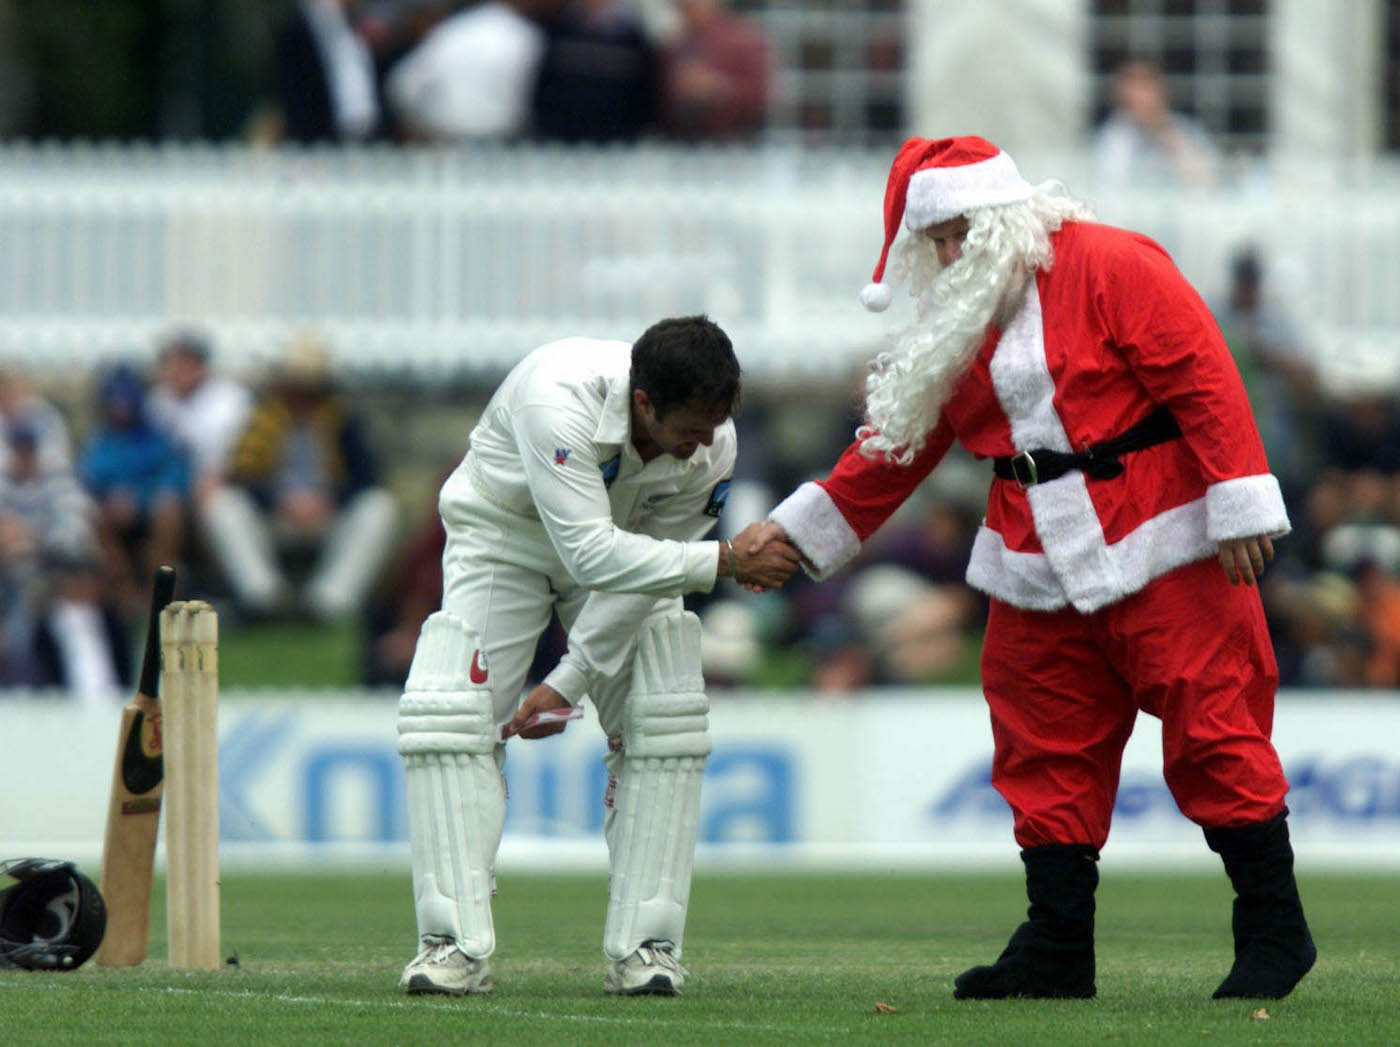 Has Christmas come early for New Zealand?